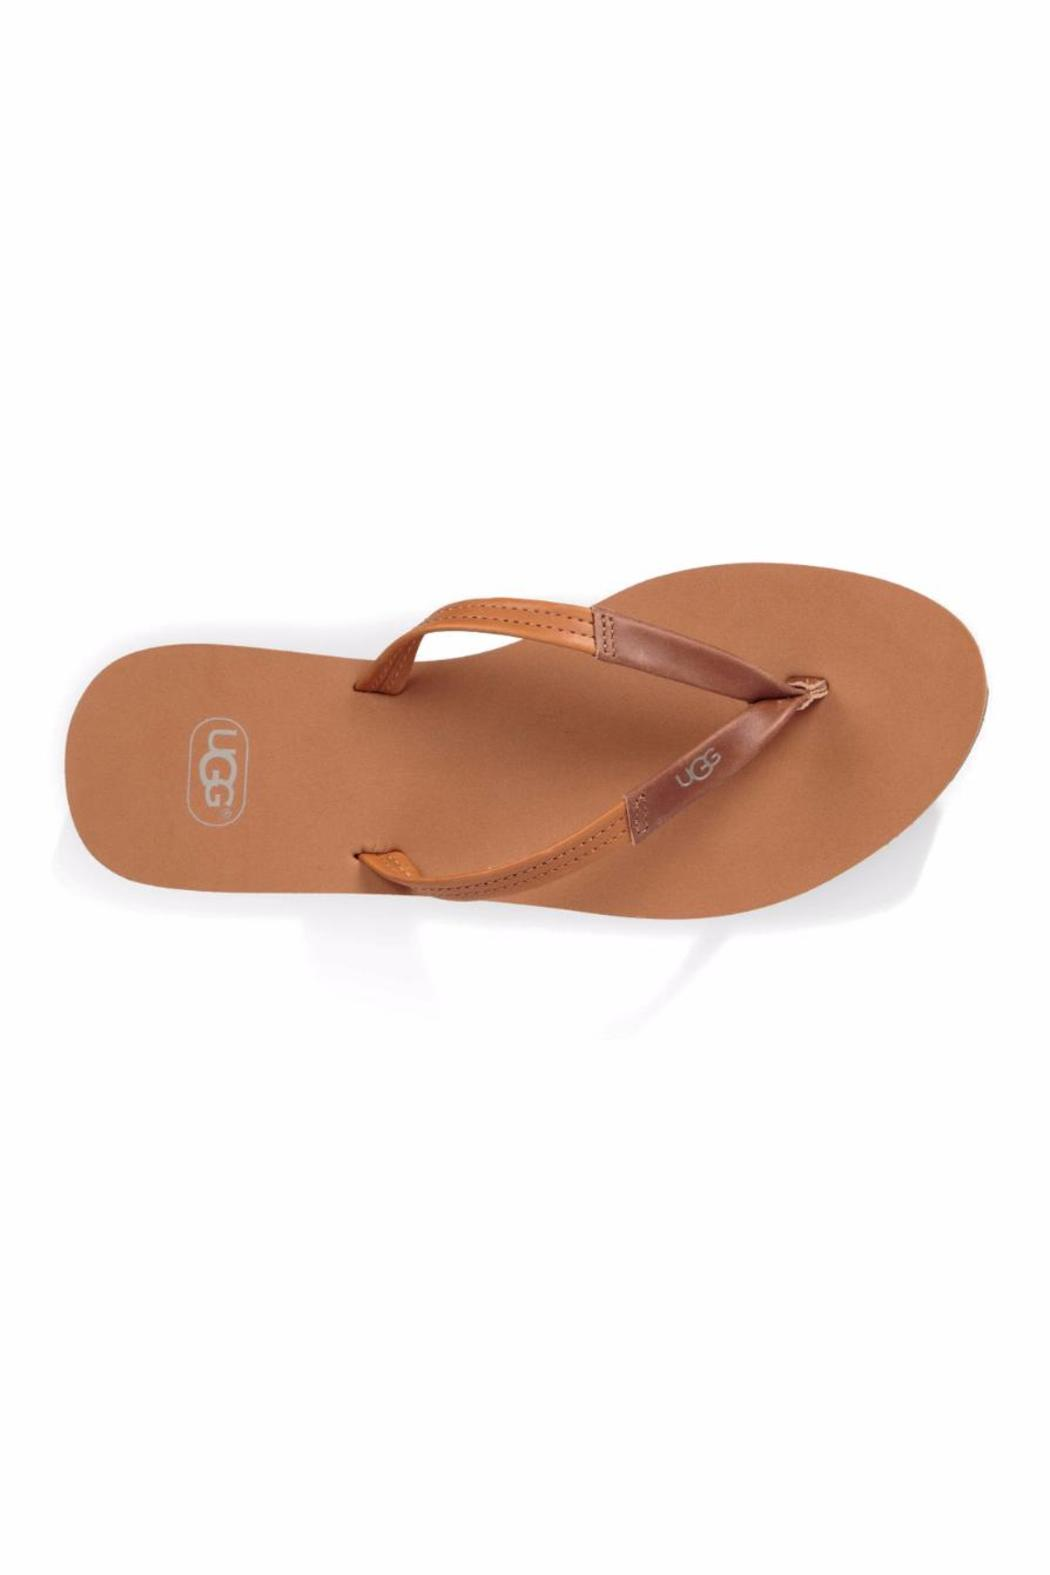 Ugg Australia Ugg Magnolia Flip Flop From Los Angeles By -9600